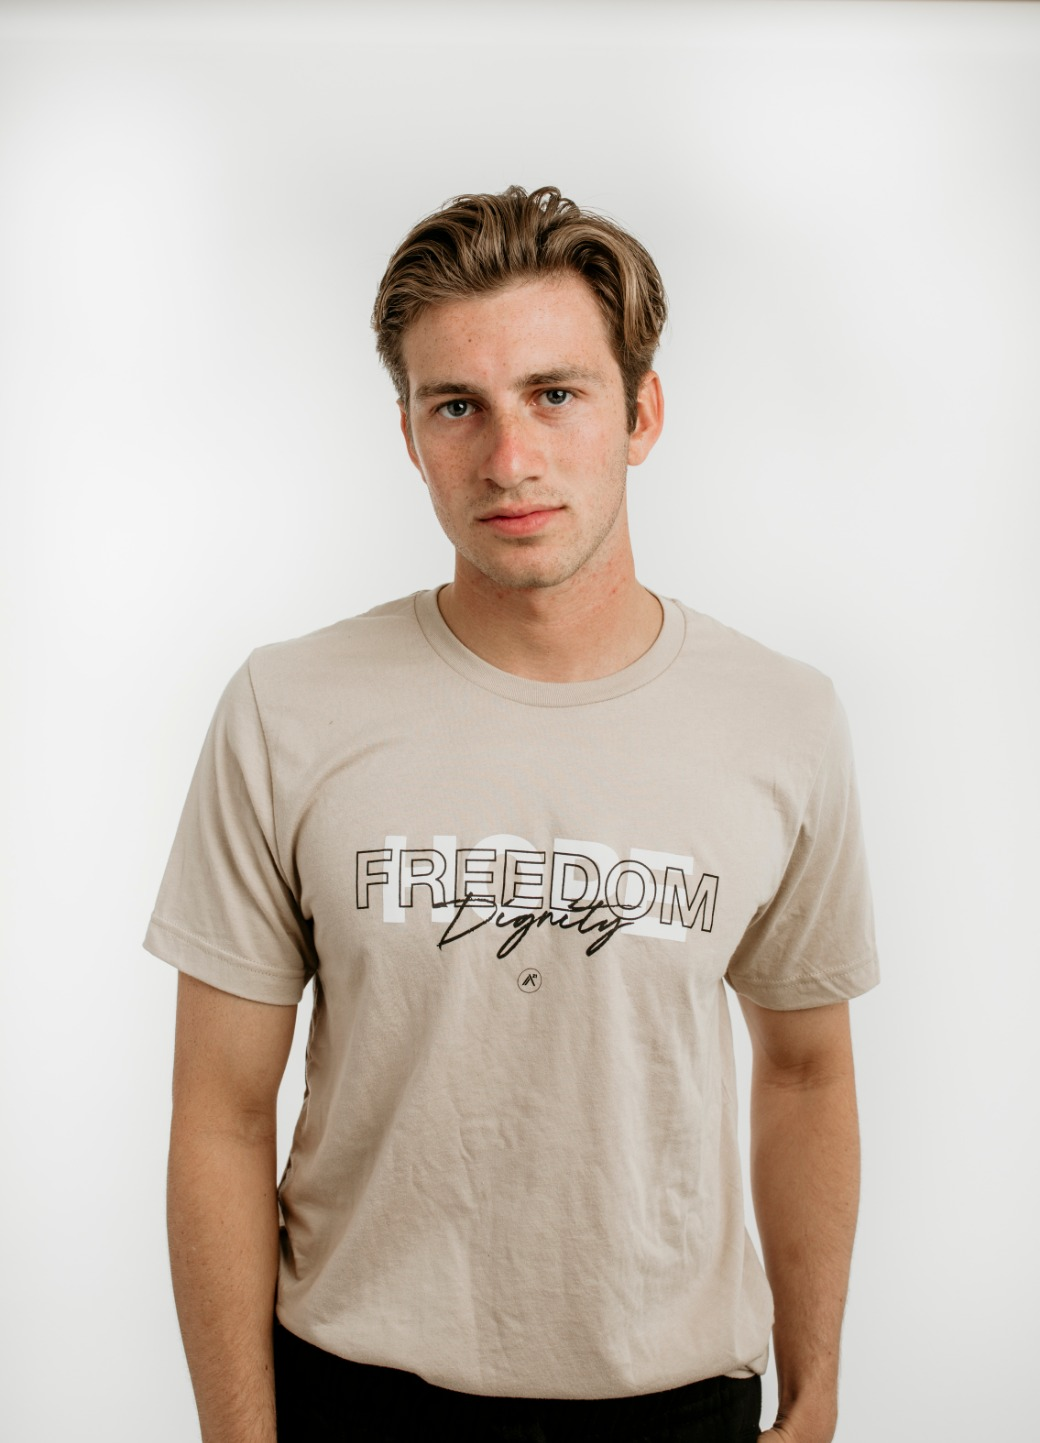 Neutral Tan: Hope, Dignity, Freedom T-Shirt 3